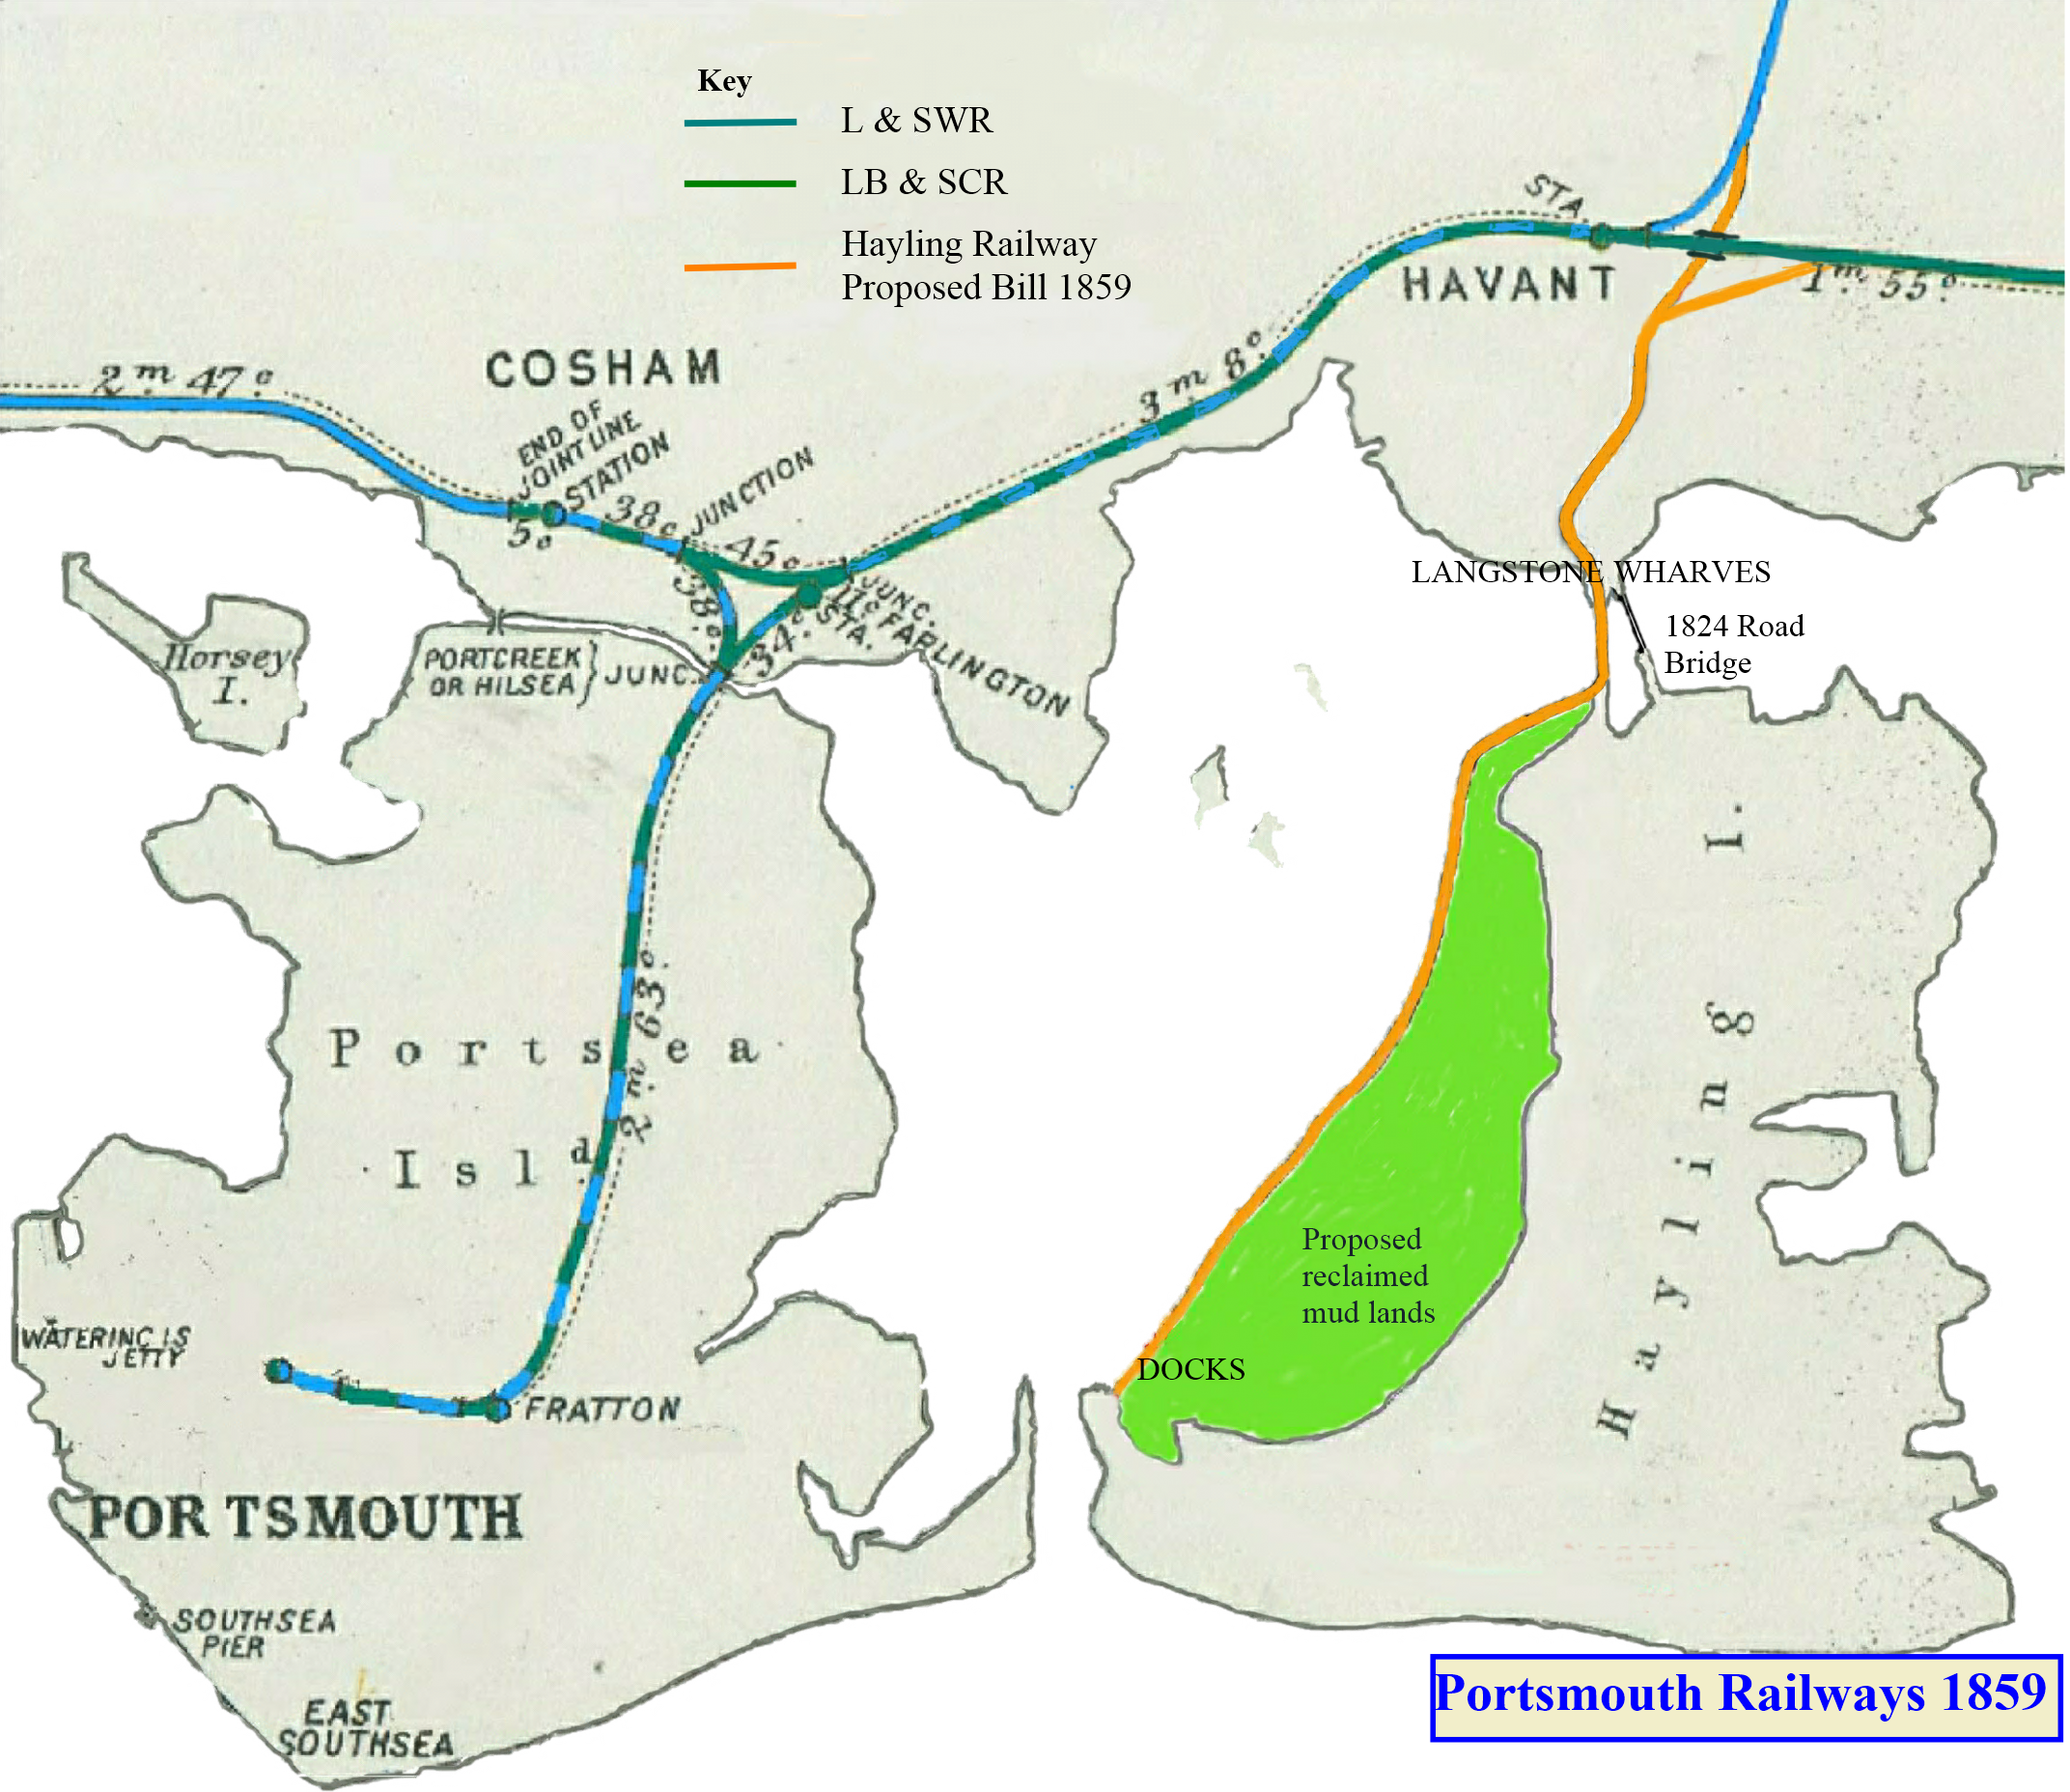 This image is a map showing the Hayling branch line from the Brighton and Waterloo main lines to a new docks facility to be built near the Portsmouth to Hayling Ferry, as authorised by the 1860 Act of Parliament.